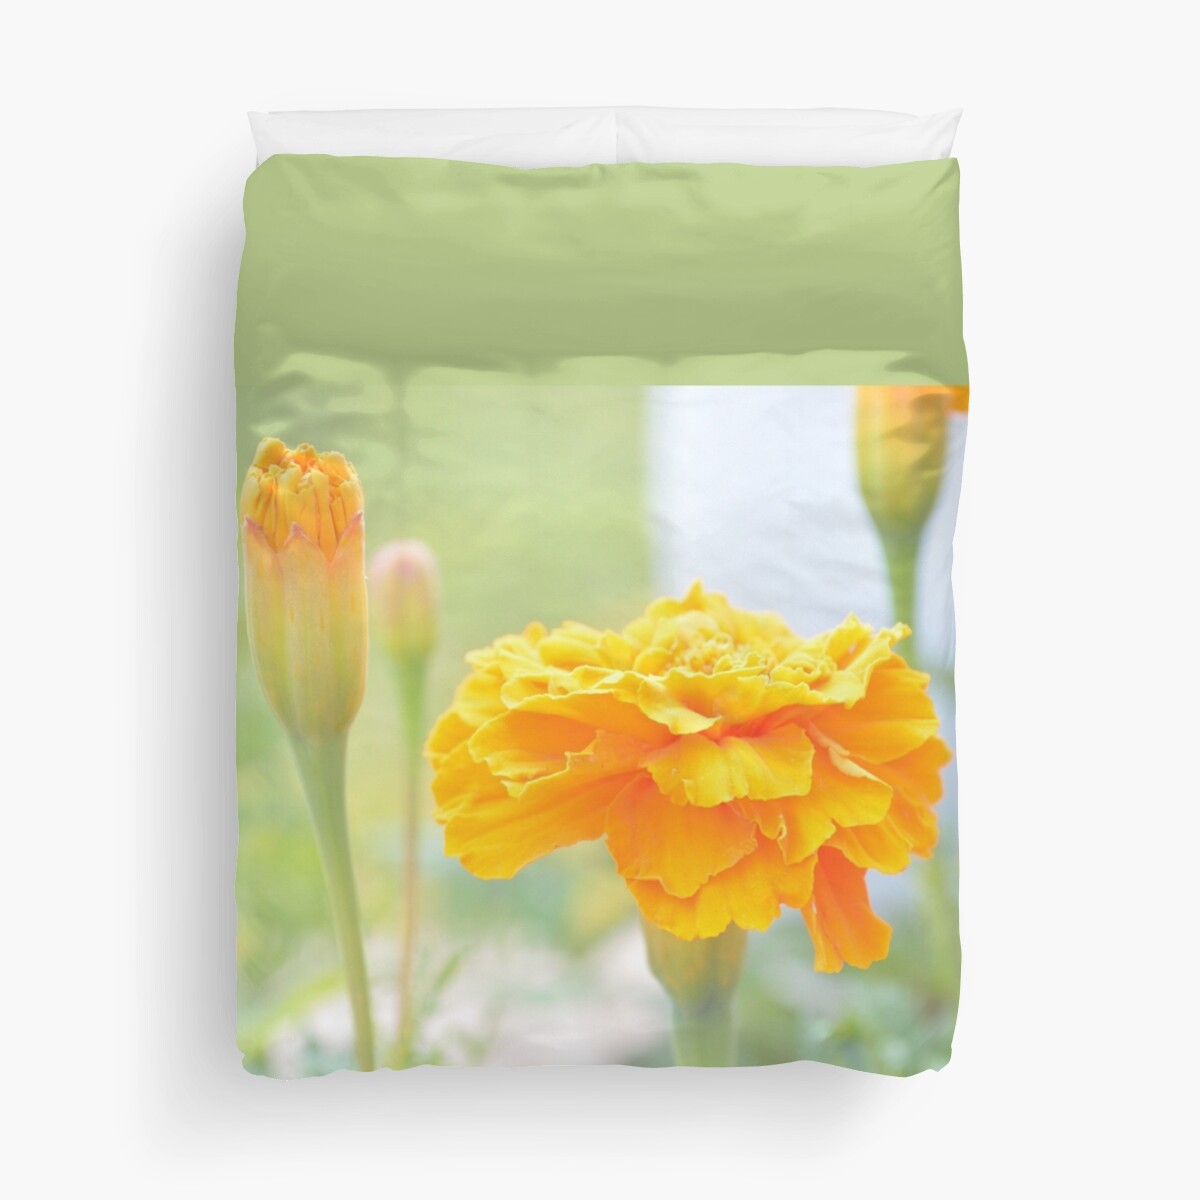 Yellow marigolds by by-jwp